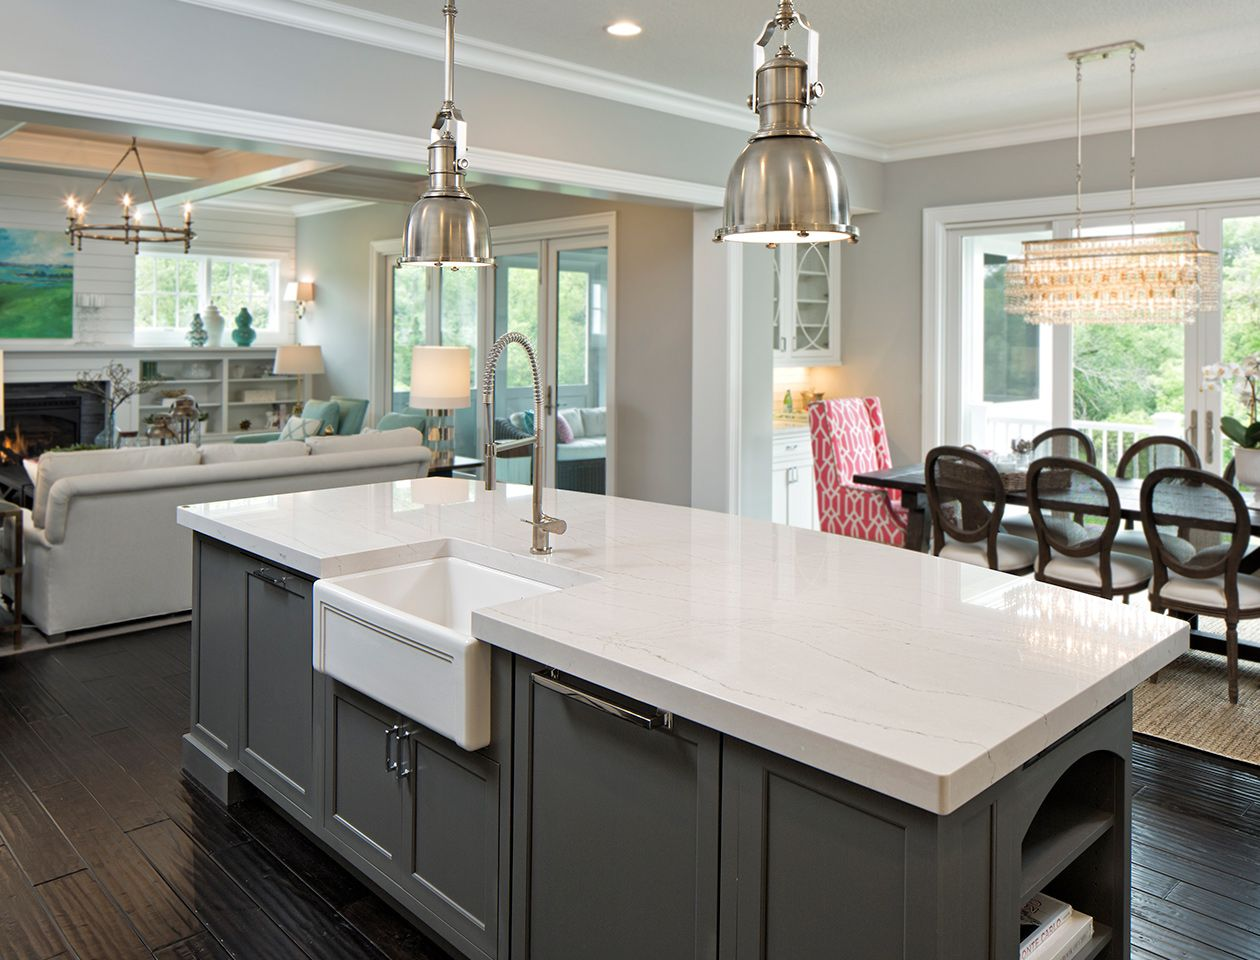 White And Grey Marble Countertops 15 Stunning Quartz Countertop Colors To Gather Inspiration